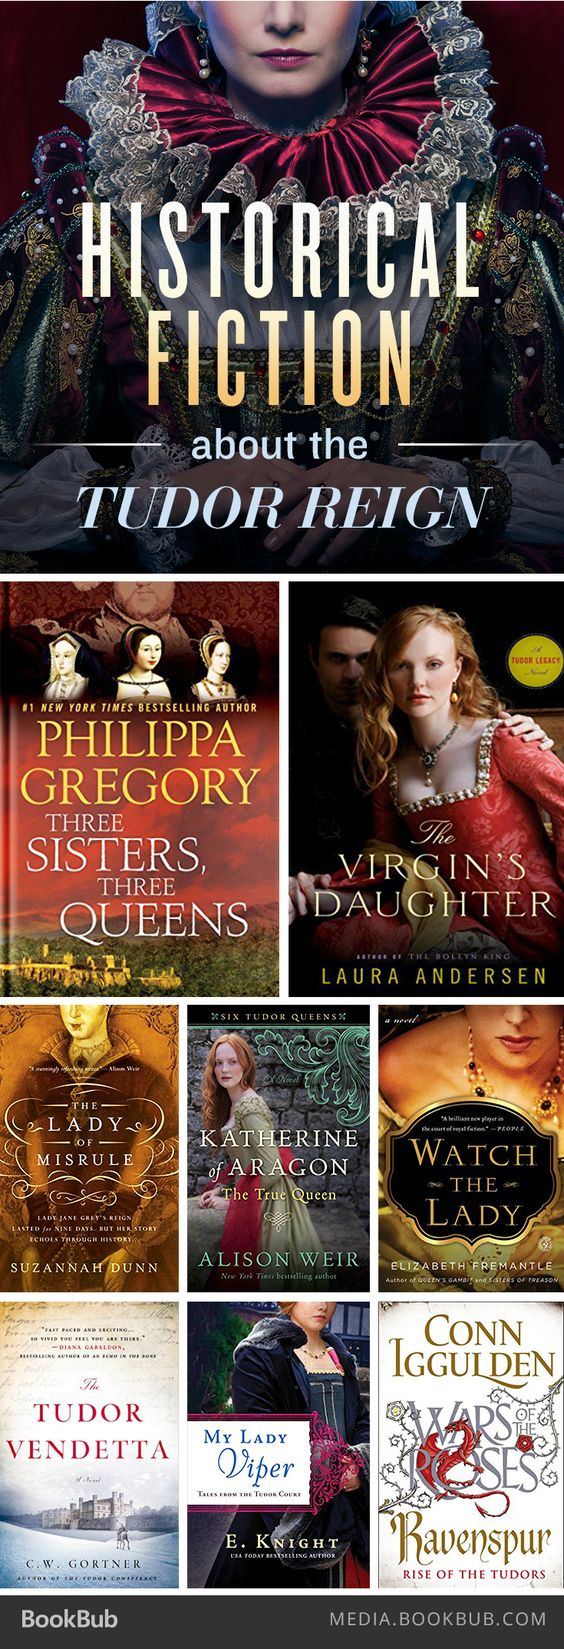 8 historical fiction books about the Tudor reign, including books from Philippa Gregory and Alison Weir.